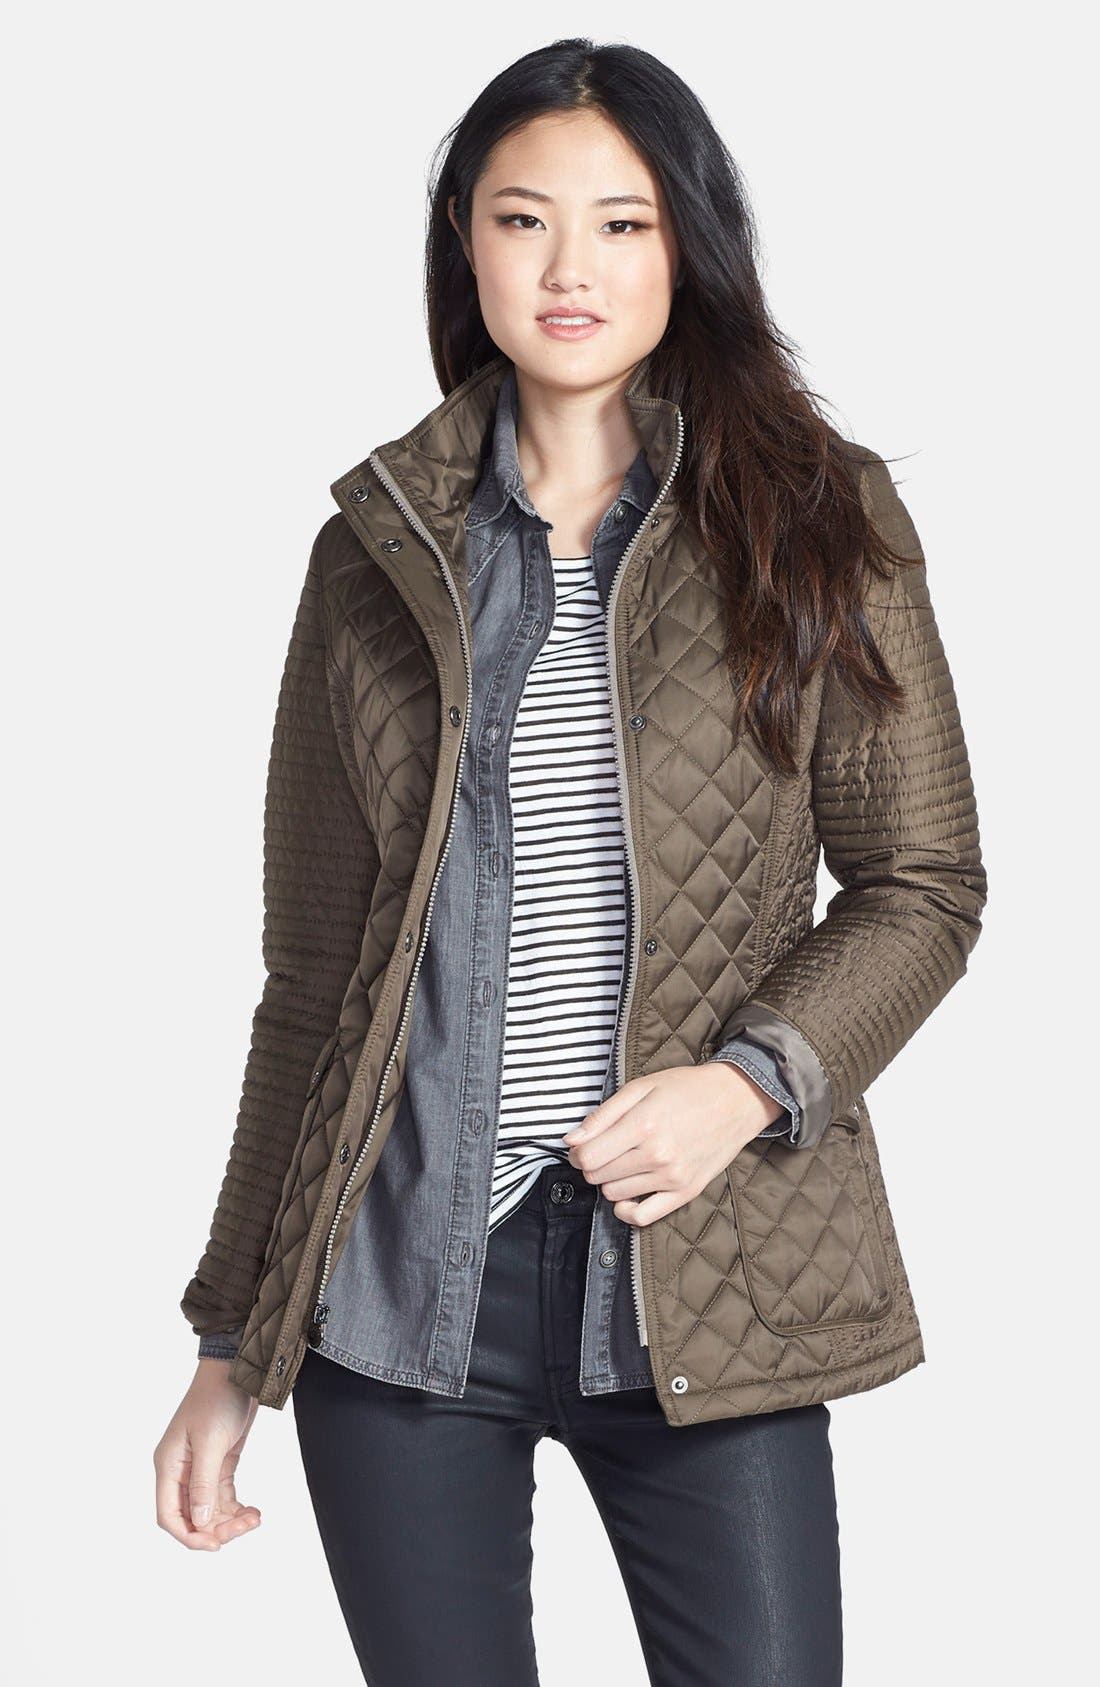 Alternate Image 1 Selected - Laundry by Shelli Segal Quilted Jacket with Removable Hood (Regular & Petite)